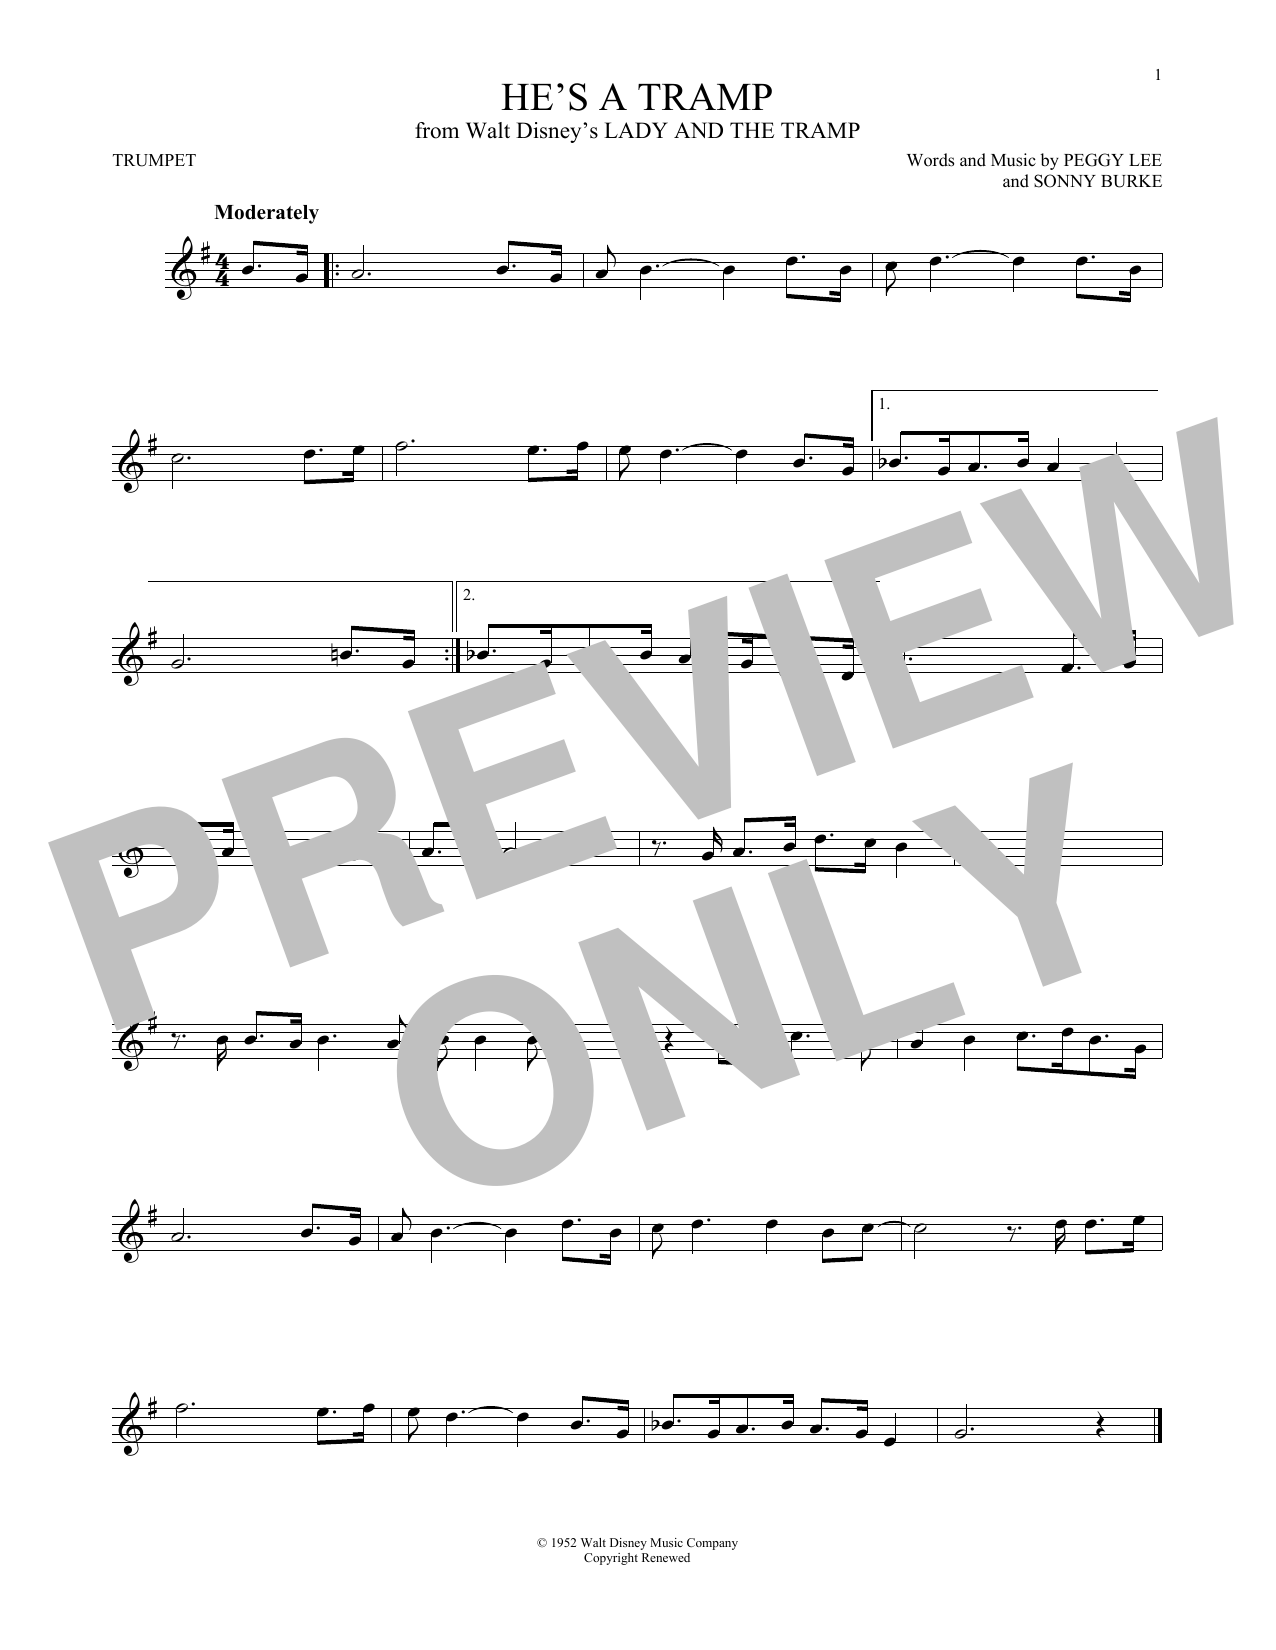 Peggy Lee & Sonny Burke He's A Tramp (from Lady And The Tramp) sheet music notes and chords. Download Printable PDF.